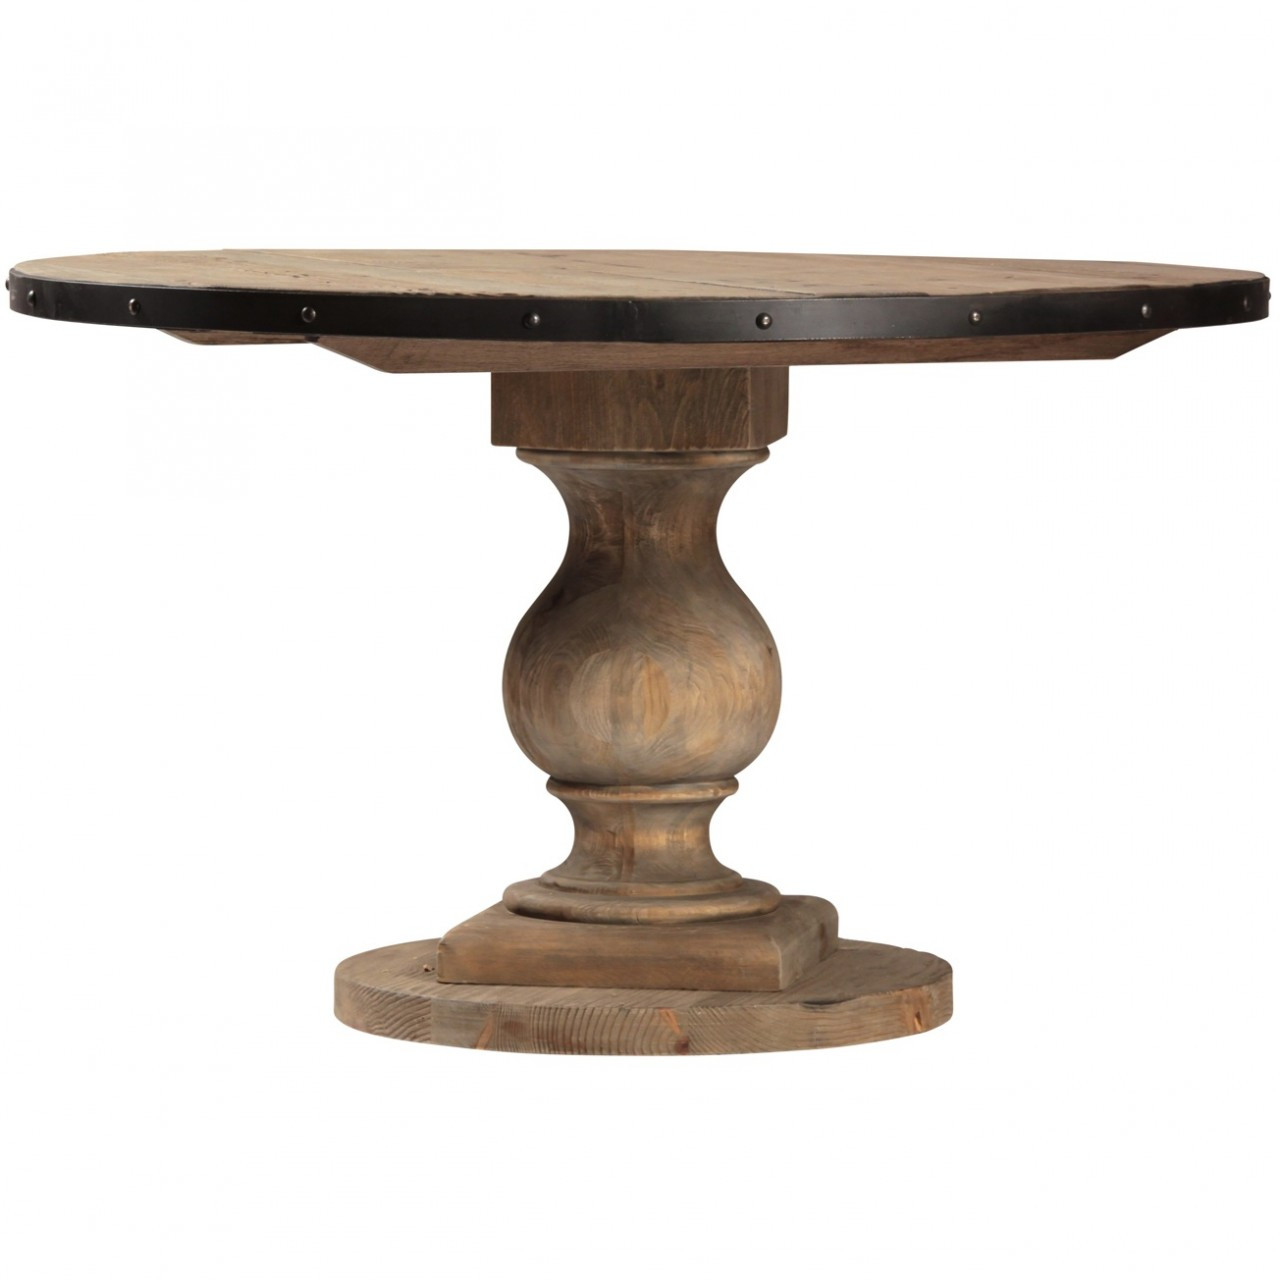 farmhouse round pedestal dining room table 51 zin home On round pedestal dining table